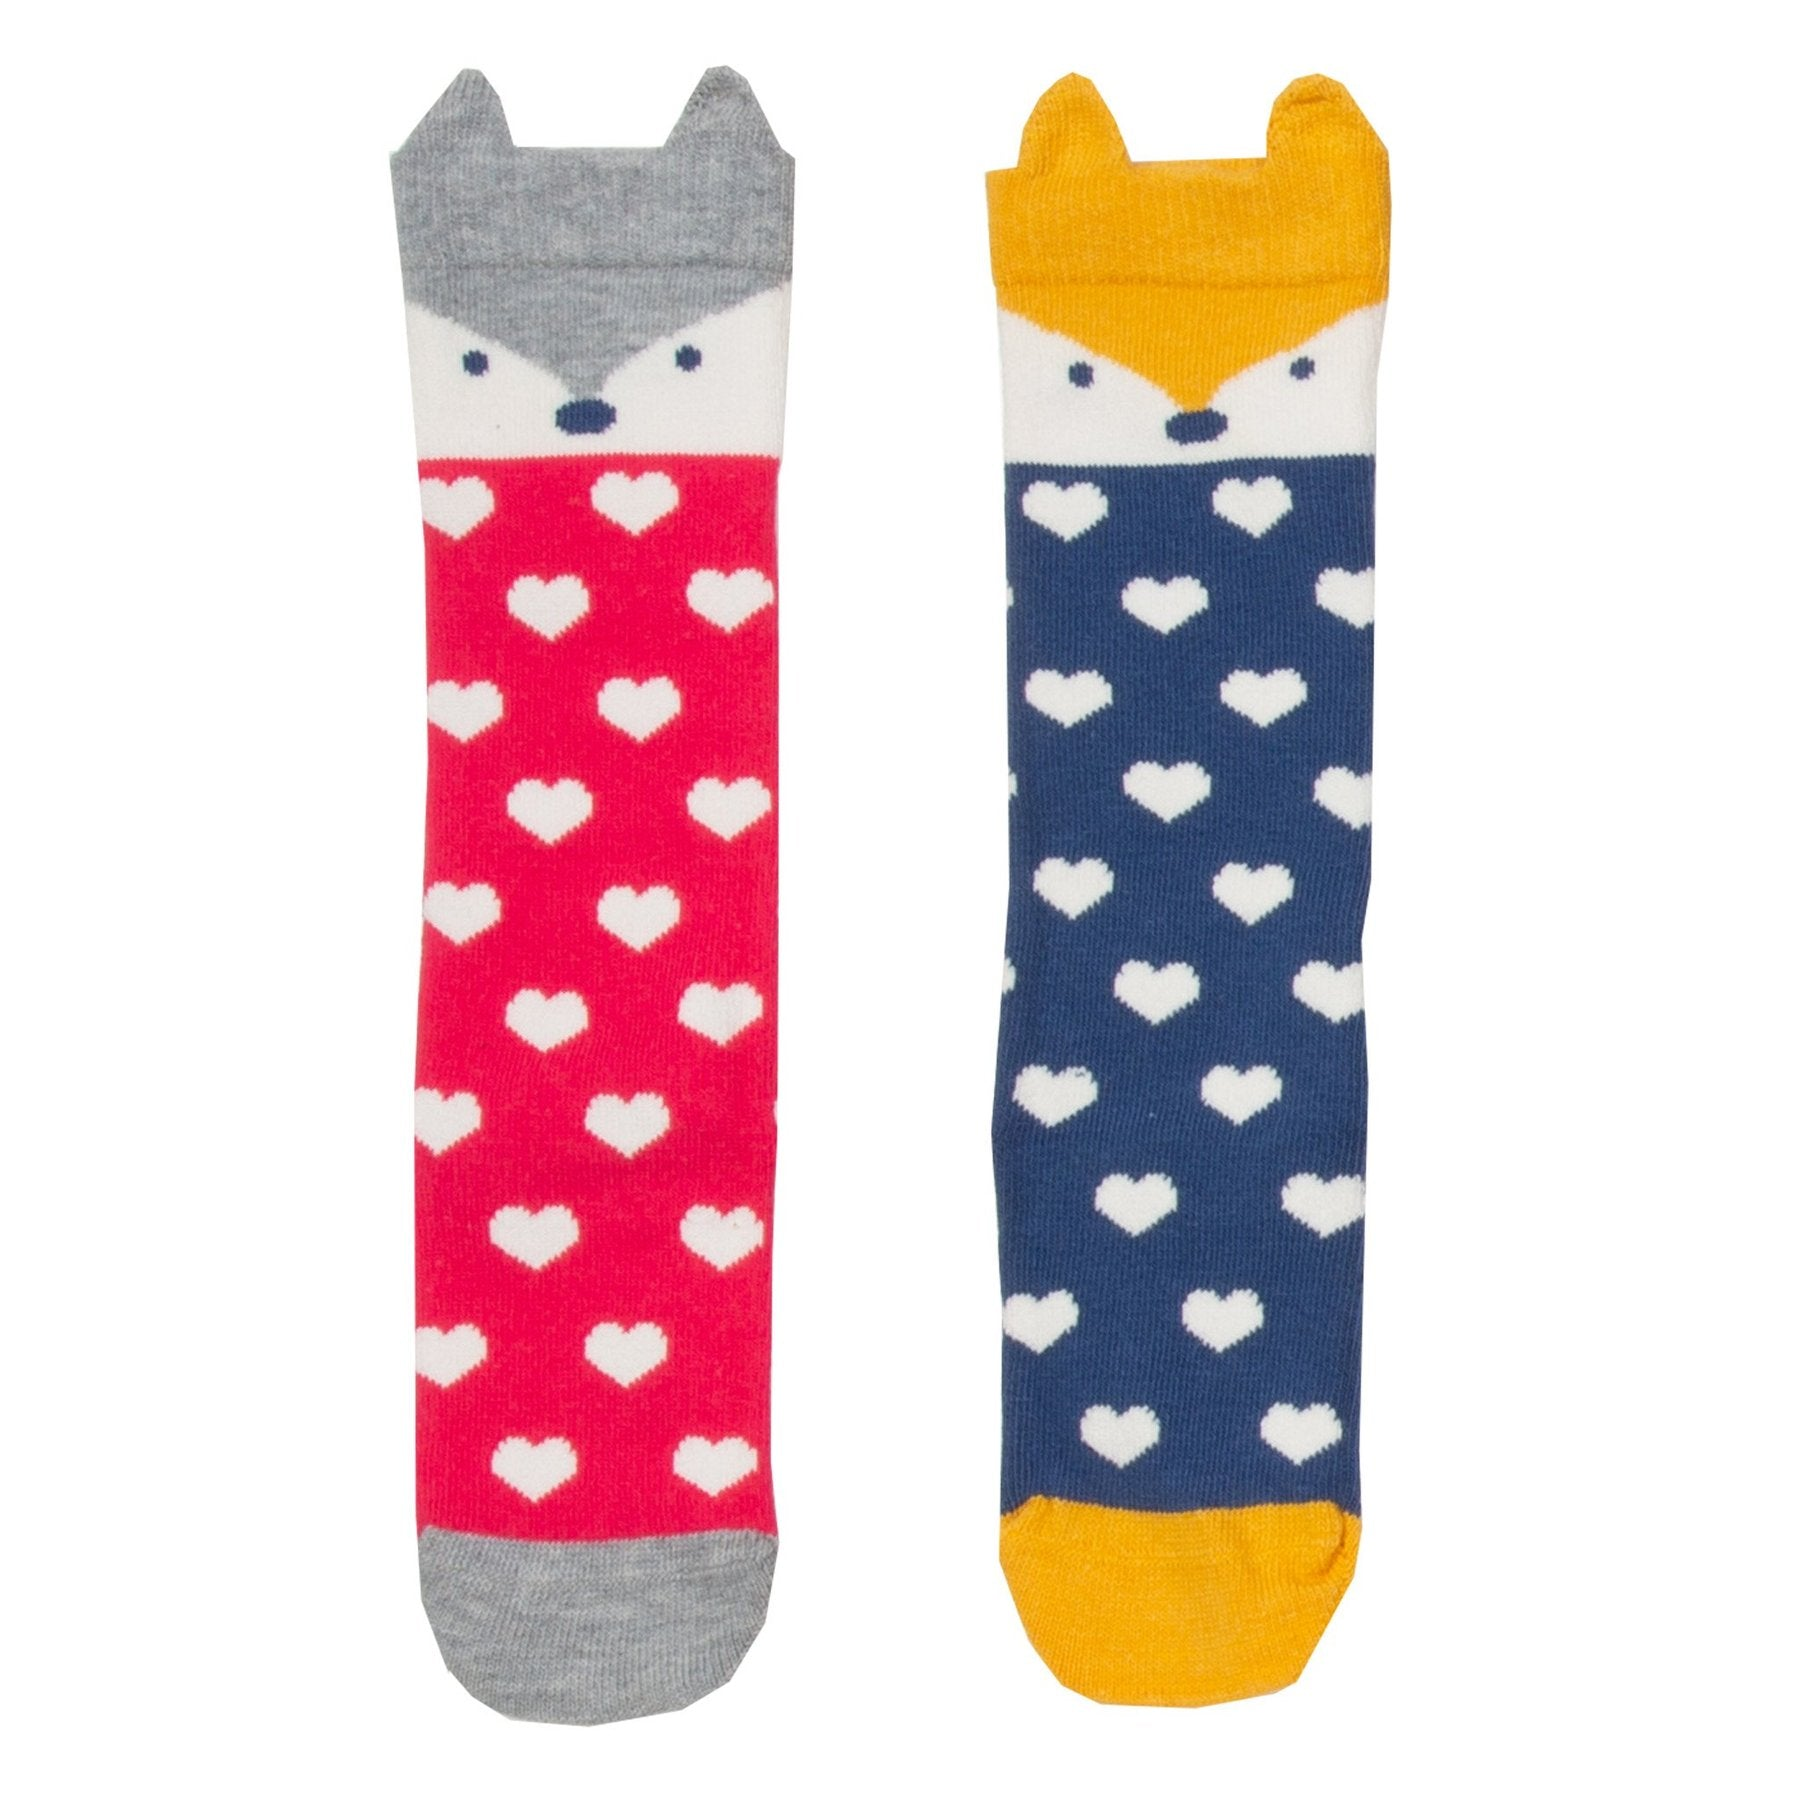 2-Pack Knee High Socks -Fox and Hearts